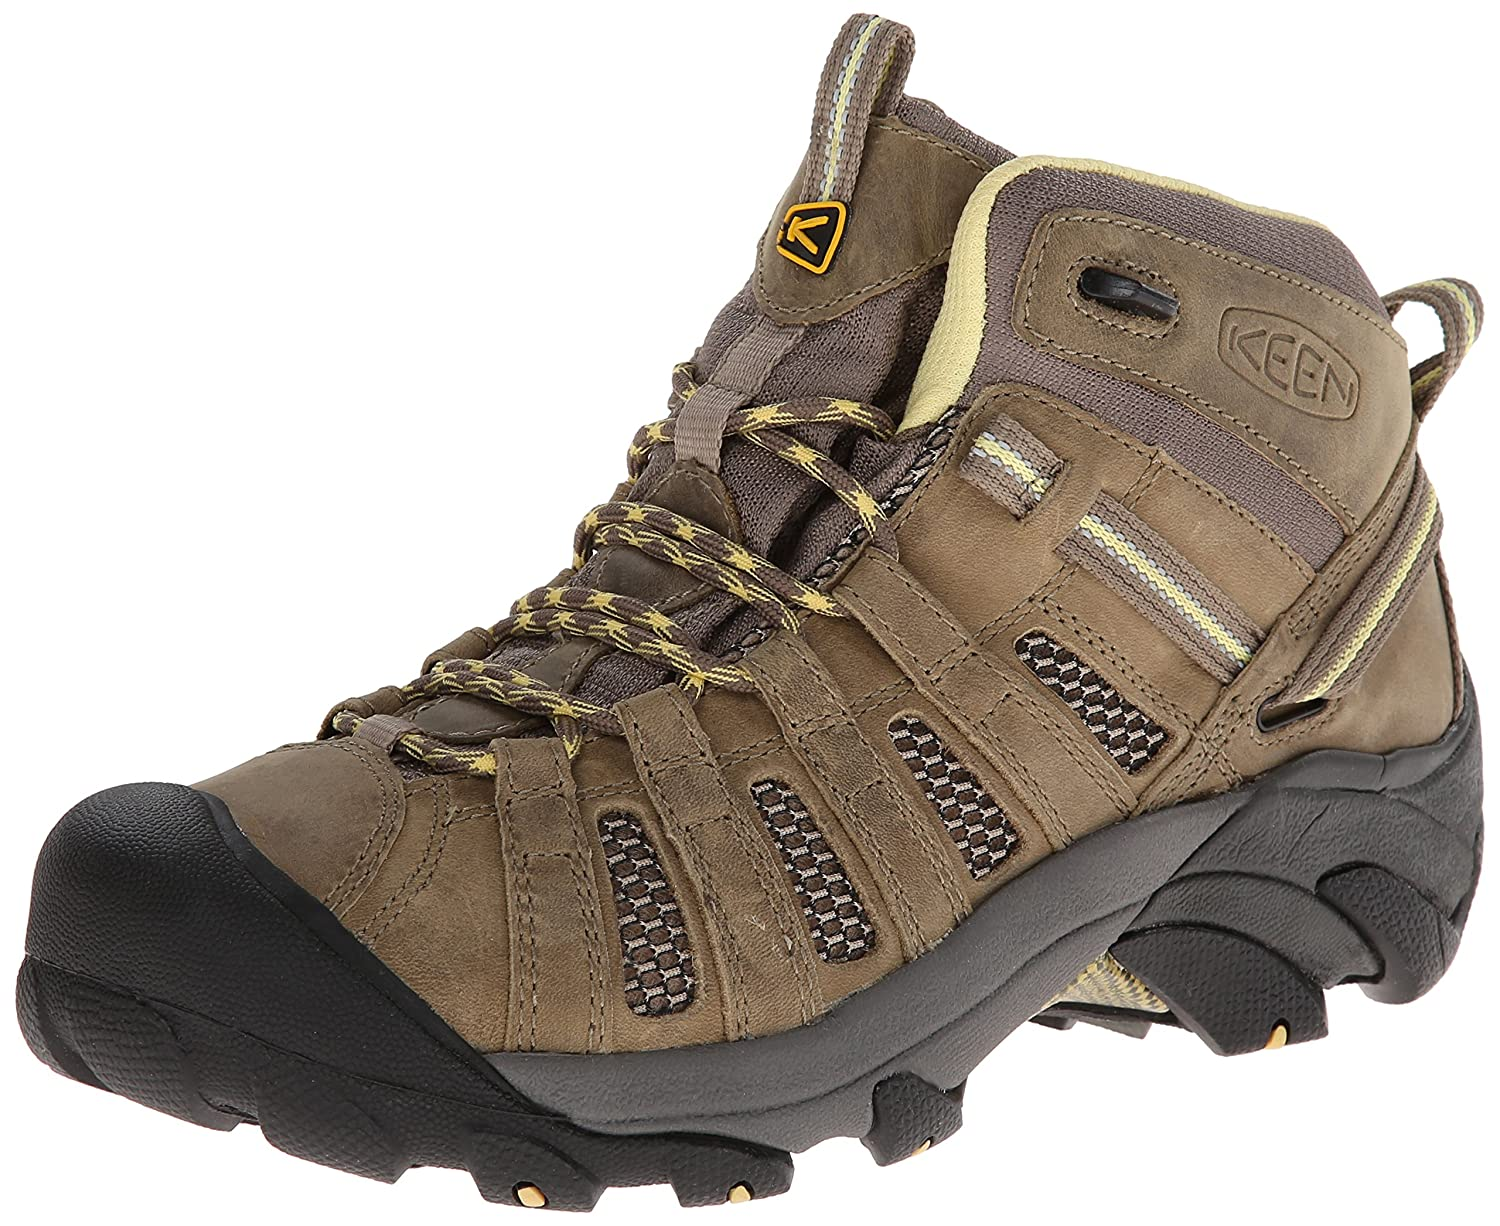 30f4a819402 KEEN Women's Voyageur Mid Hiking Boot